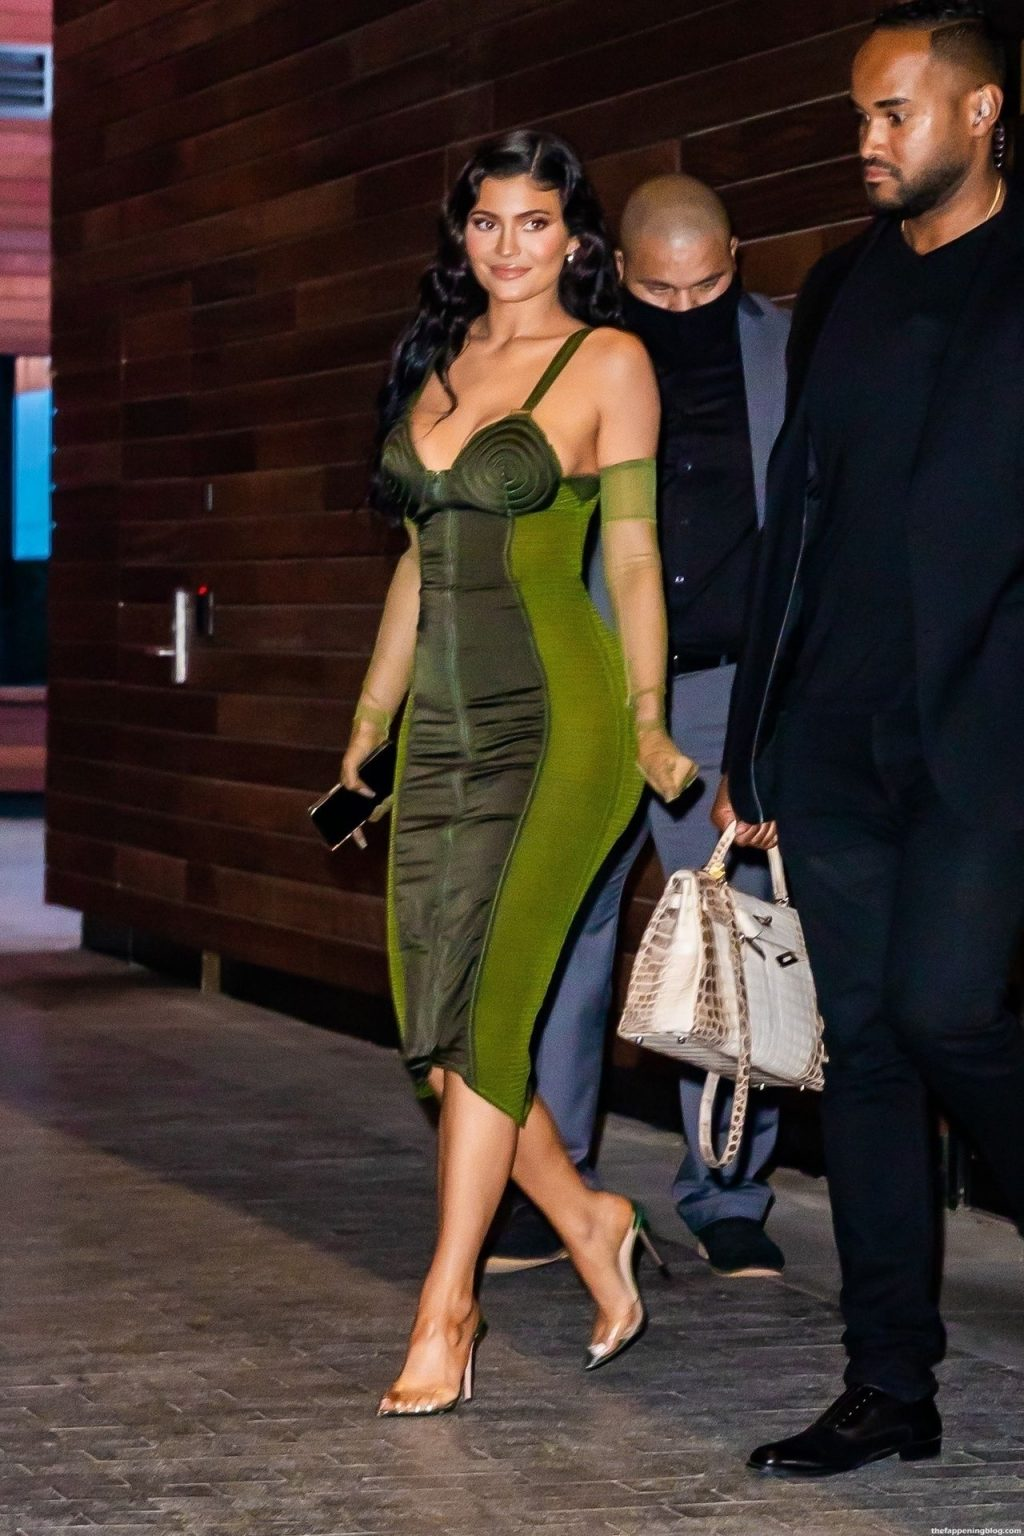 Kylie Jenner & Travis Scott are Seen Attending the Parsons Benefit in NY (91 Photos)